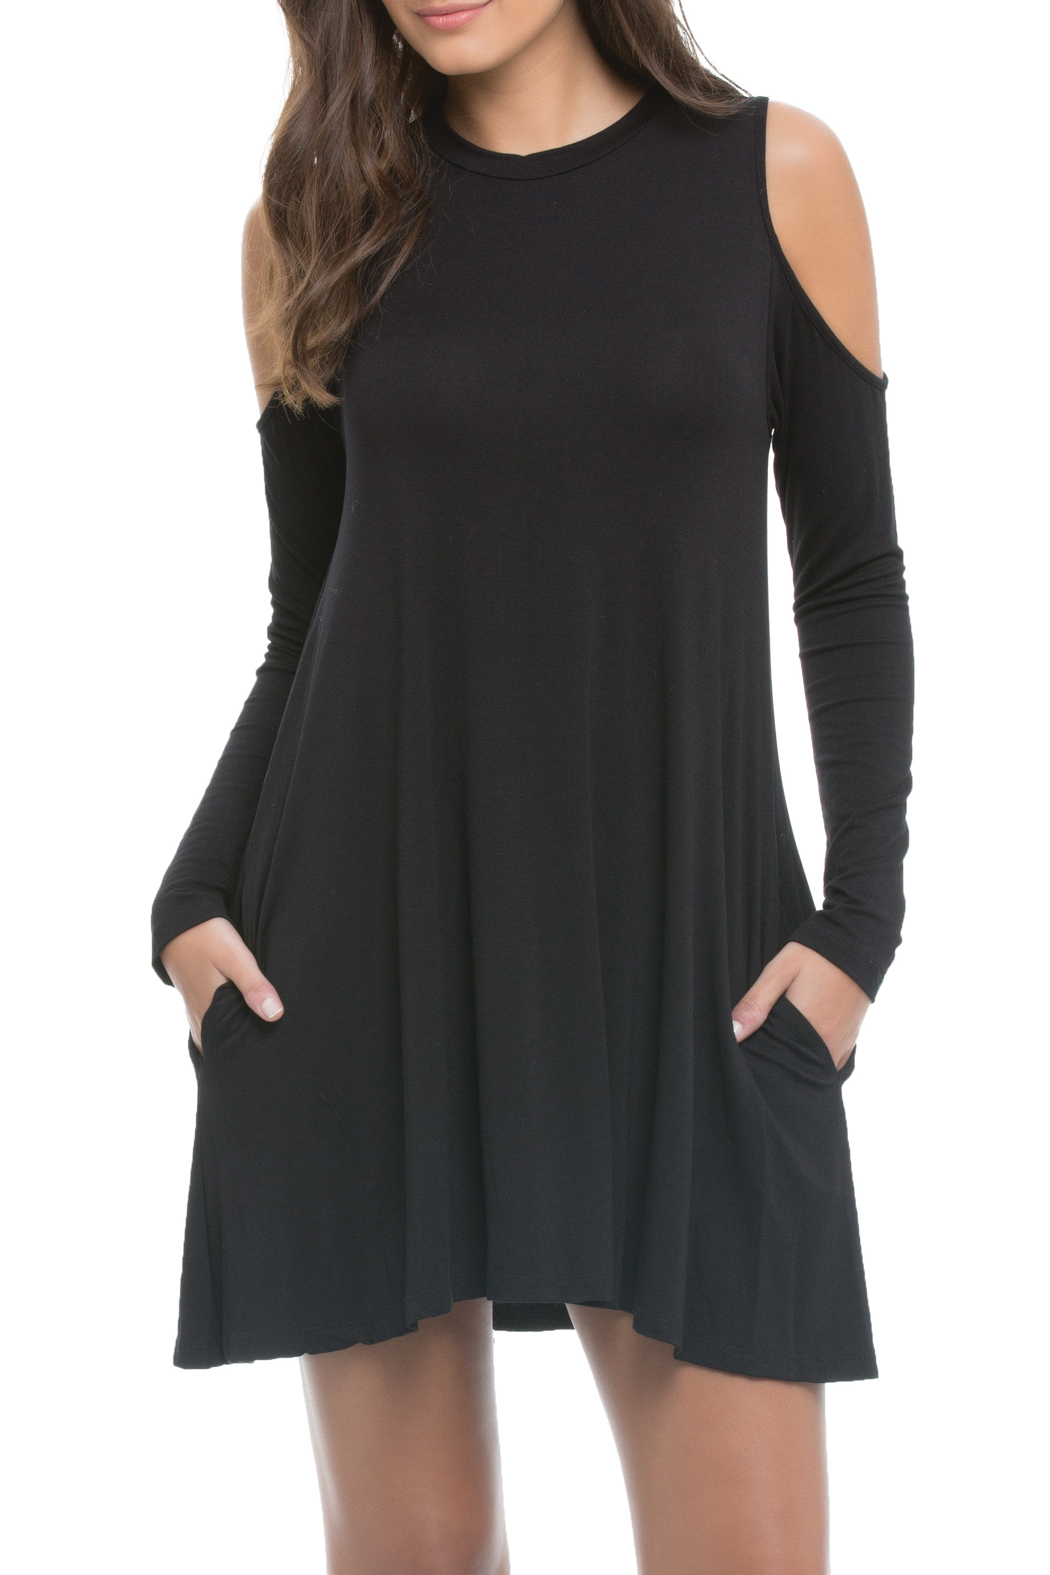 Elan Cold Shoulder Pocket Dress - Main Image